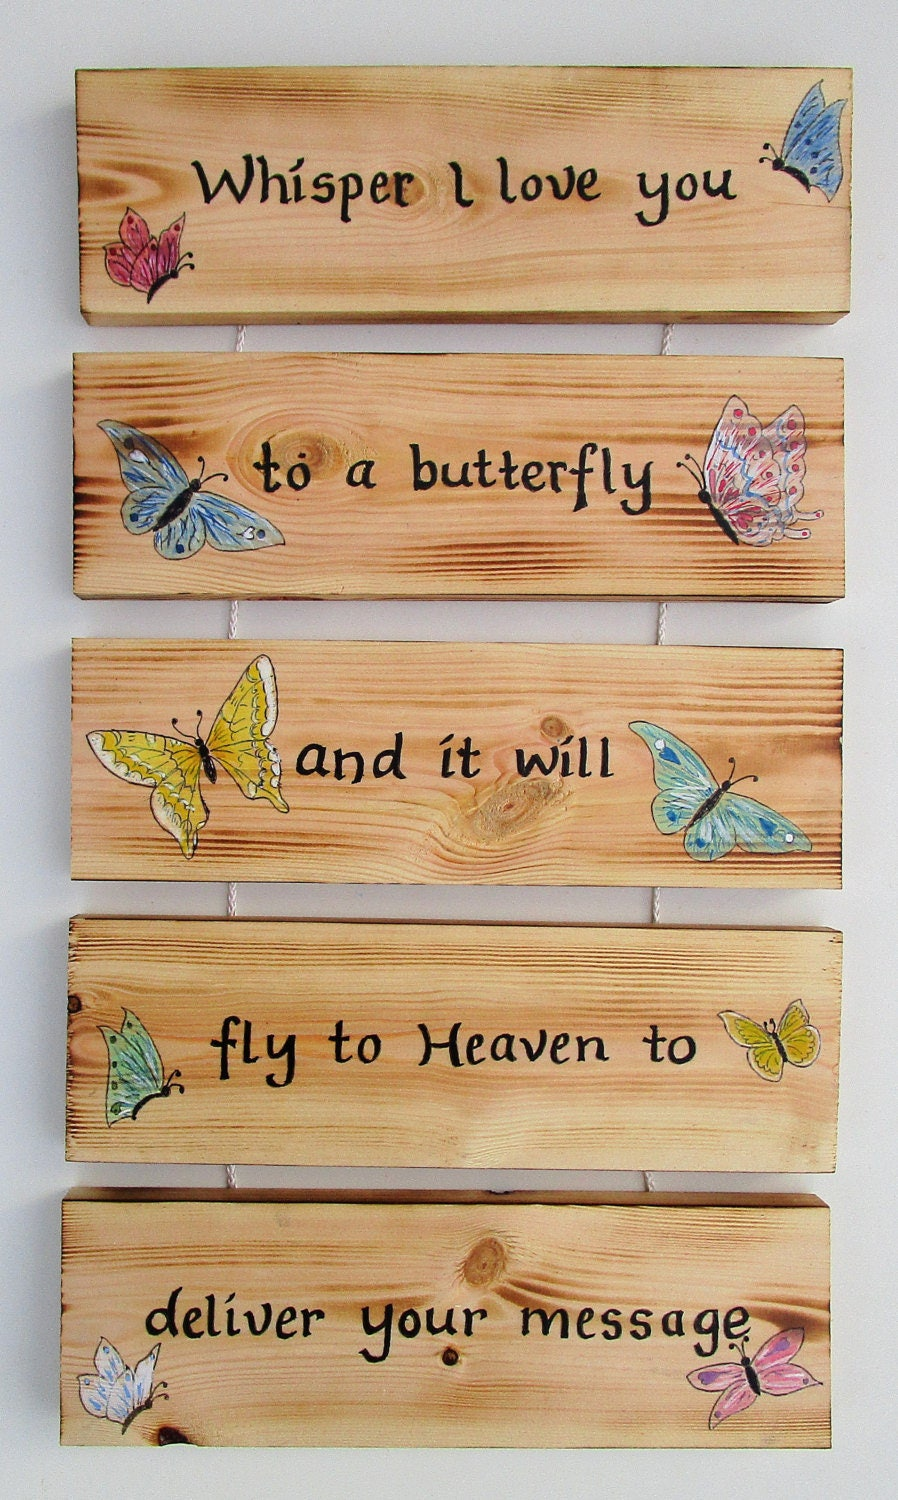 Butterfly Wall Plaque  Butterfly Gifts  Handmade  Home Decor  Home Accessories  Memorial  Home and Living  Art and Collectibles